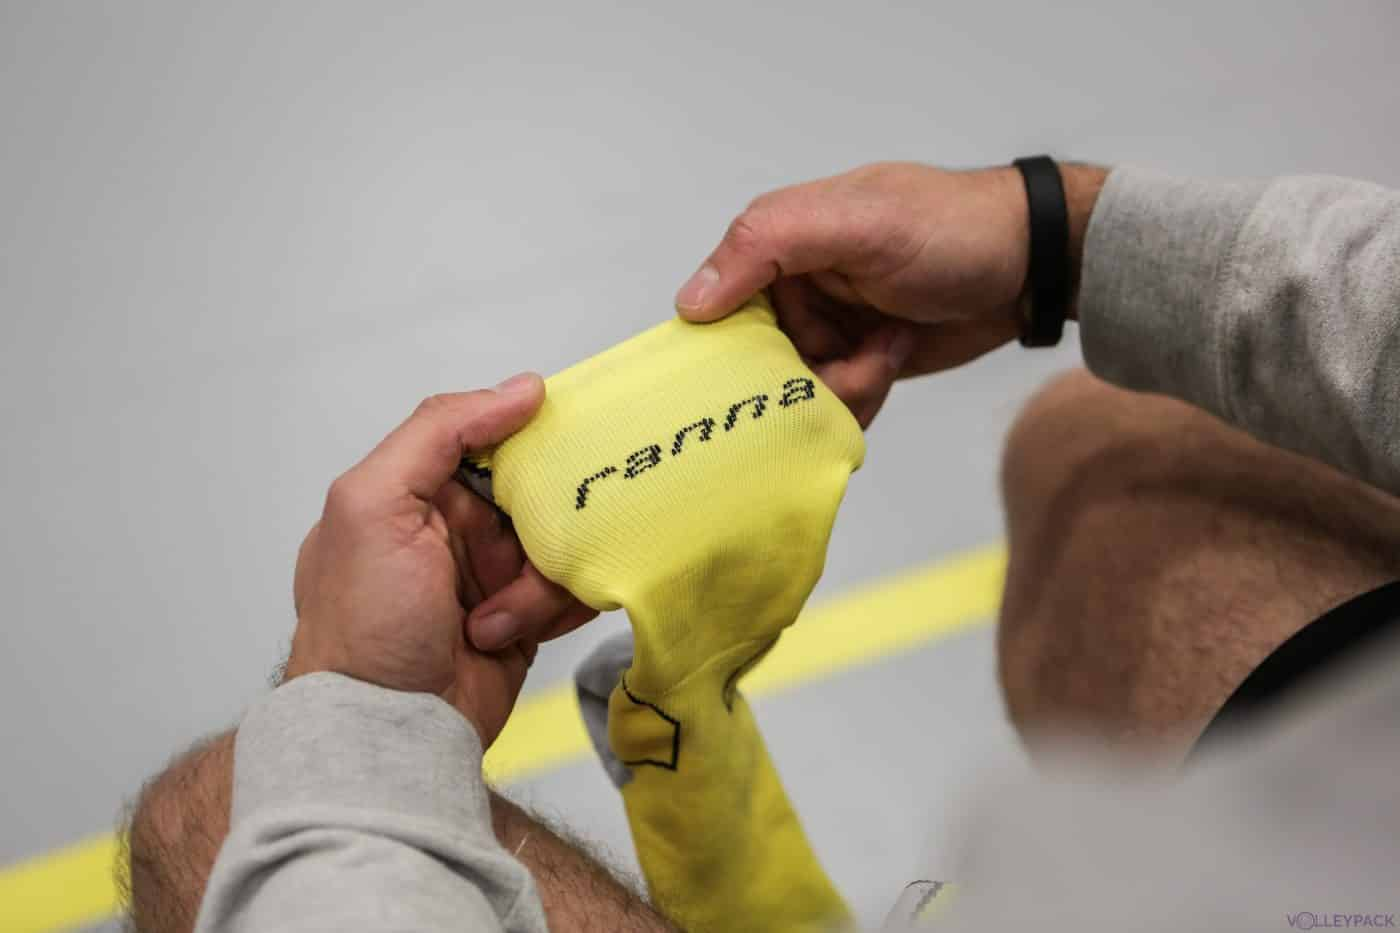 chaussettes-ranna-sport-test-volleypack-9